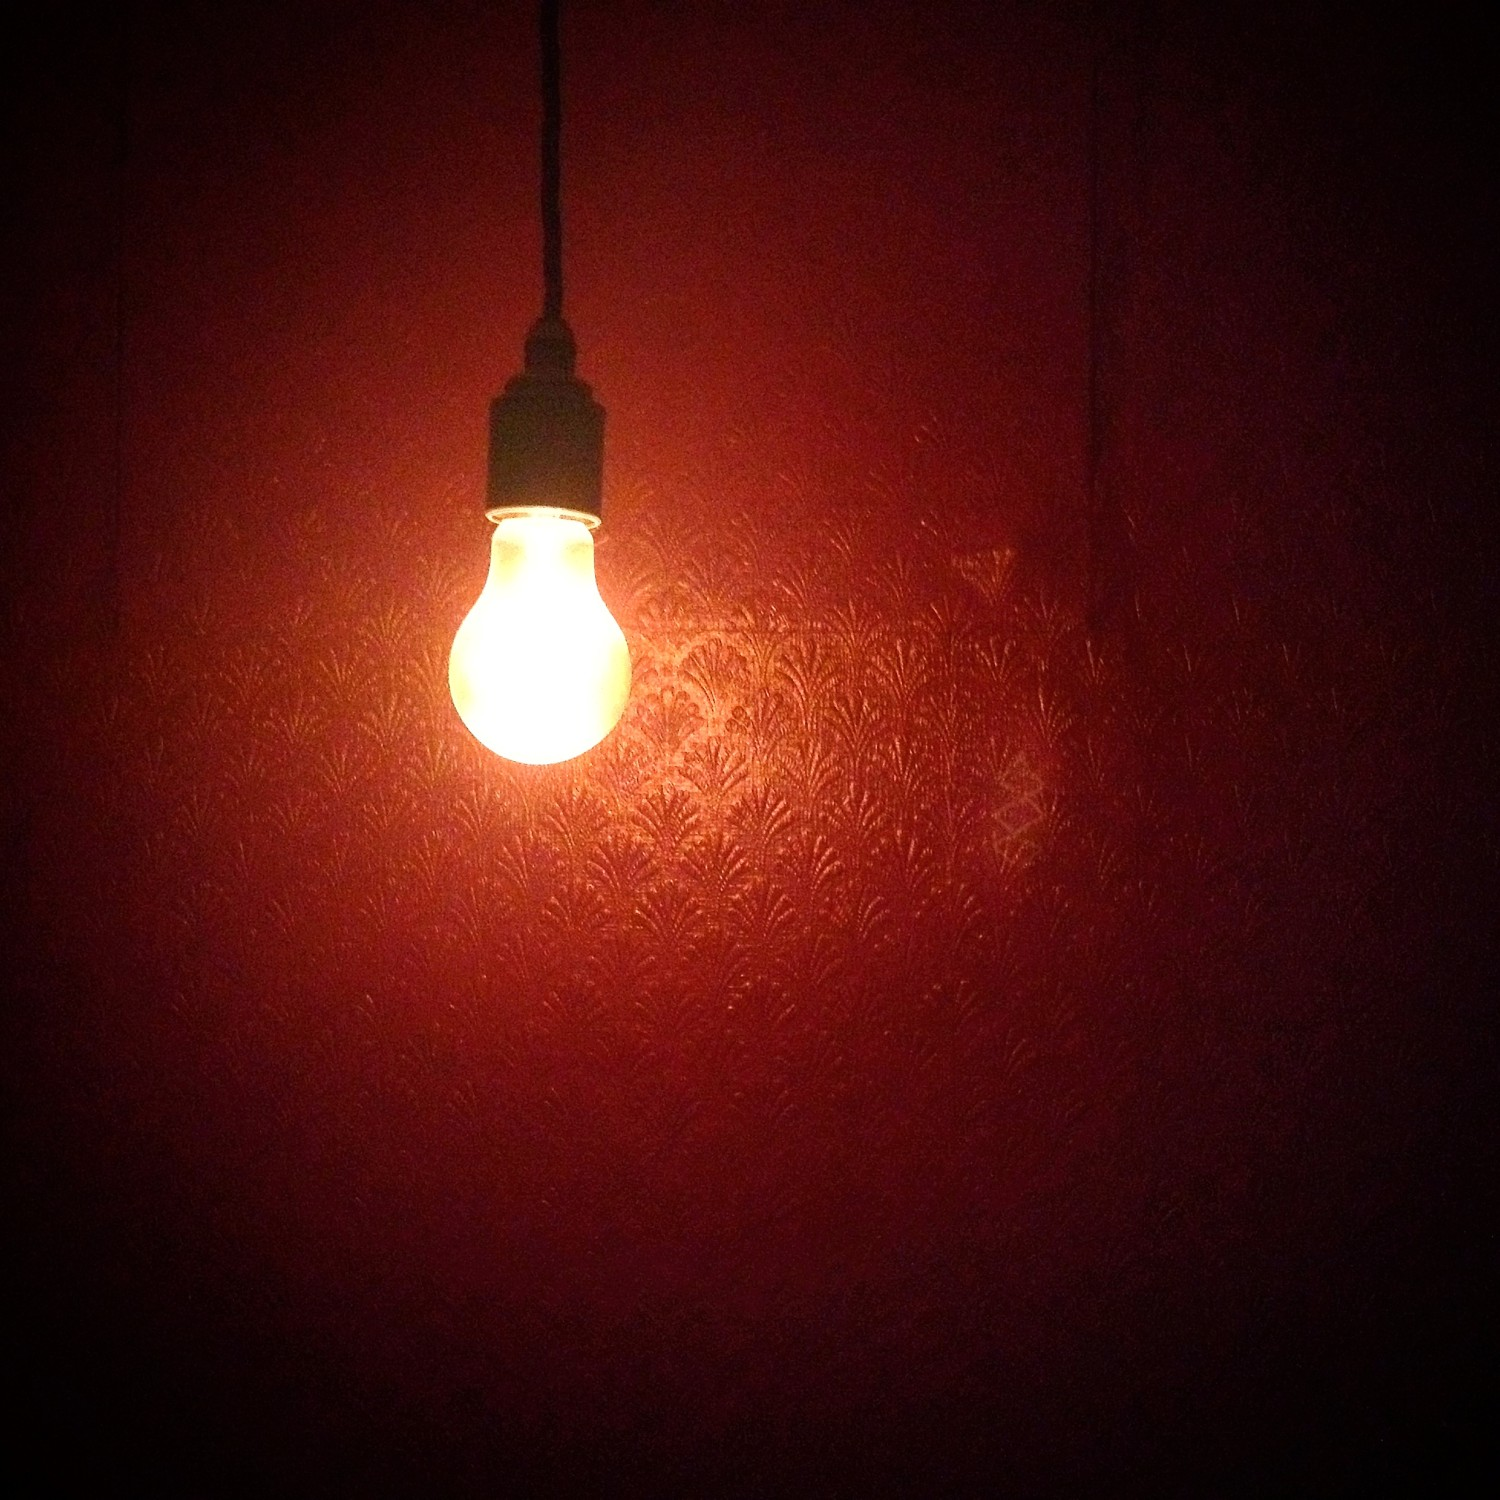 lightbulb_red